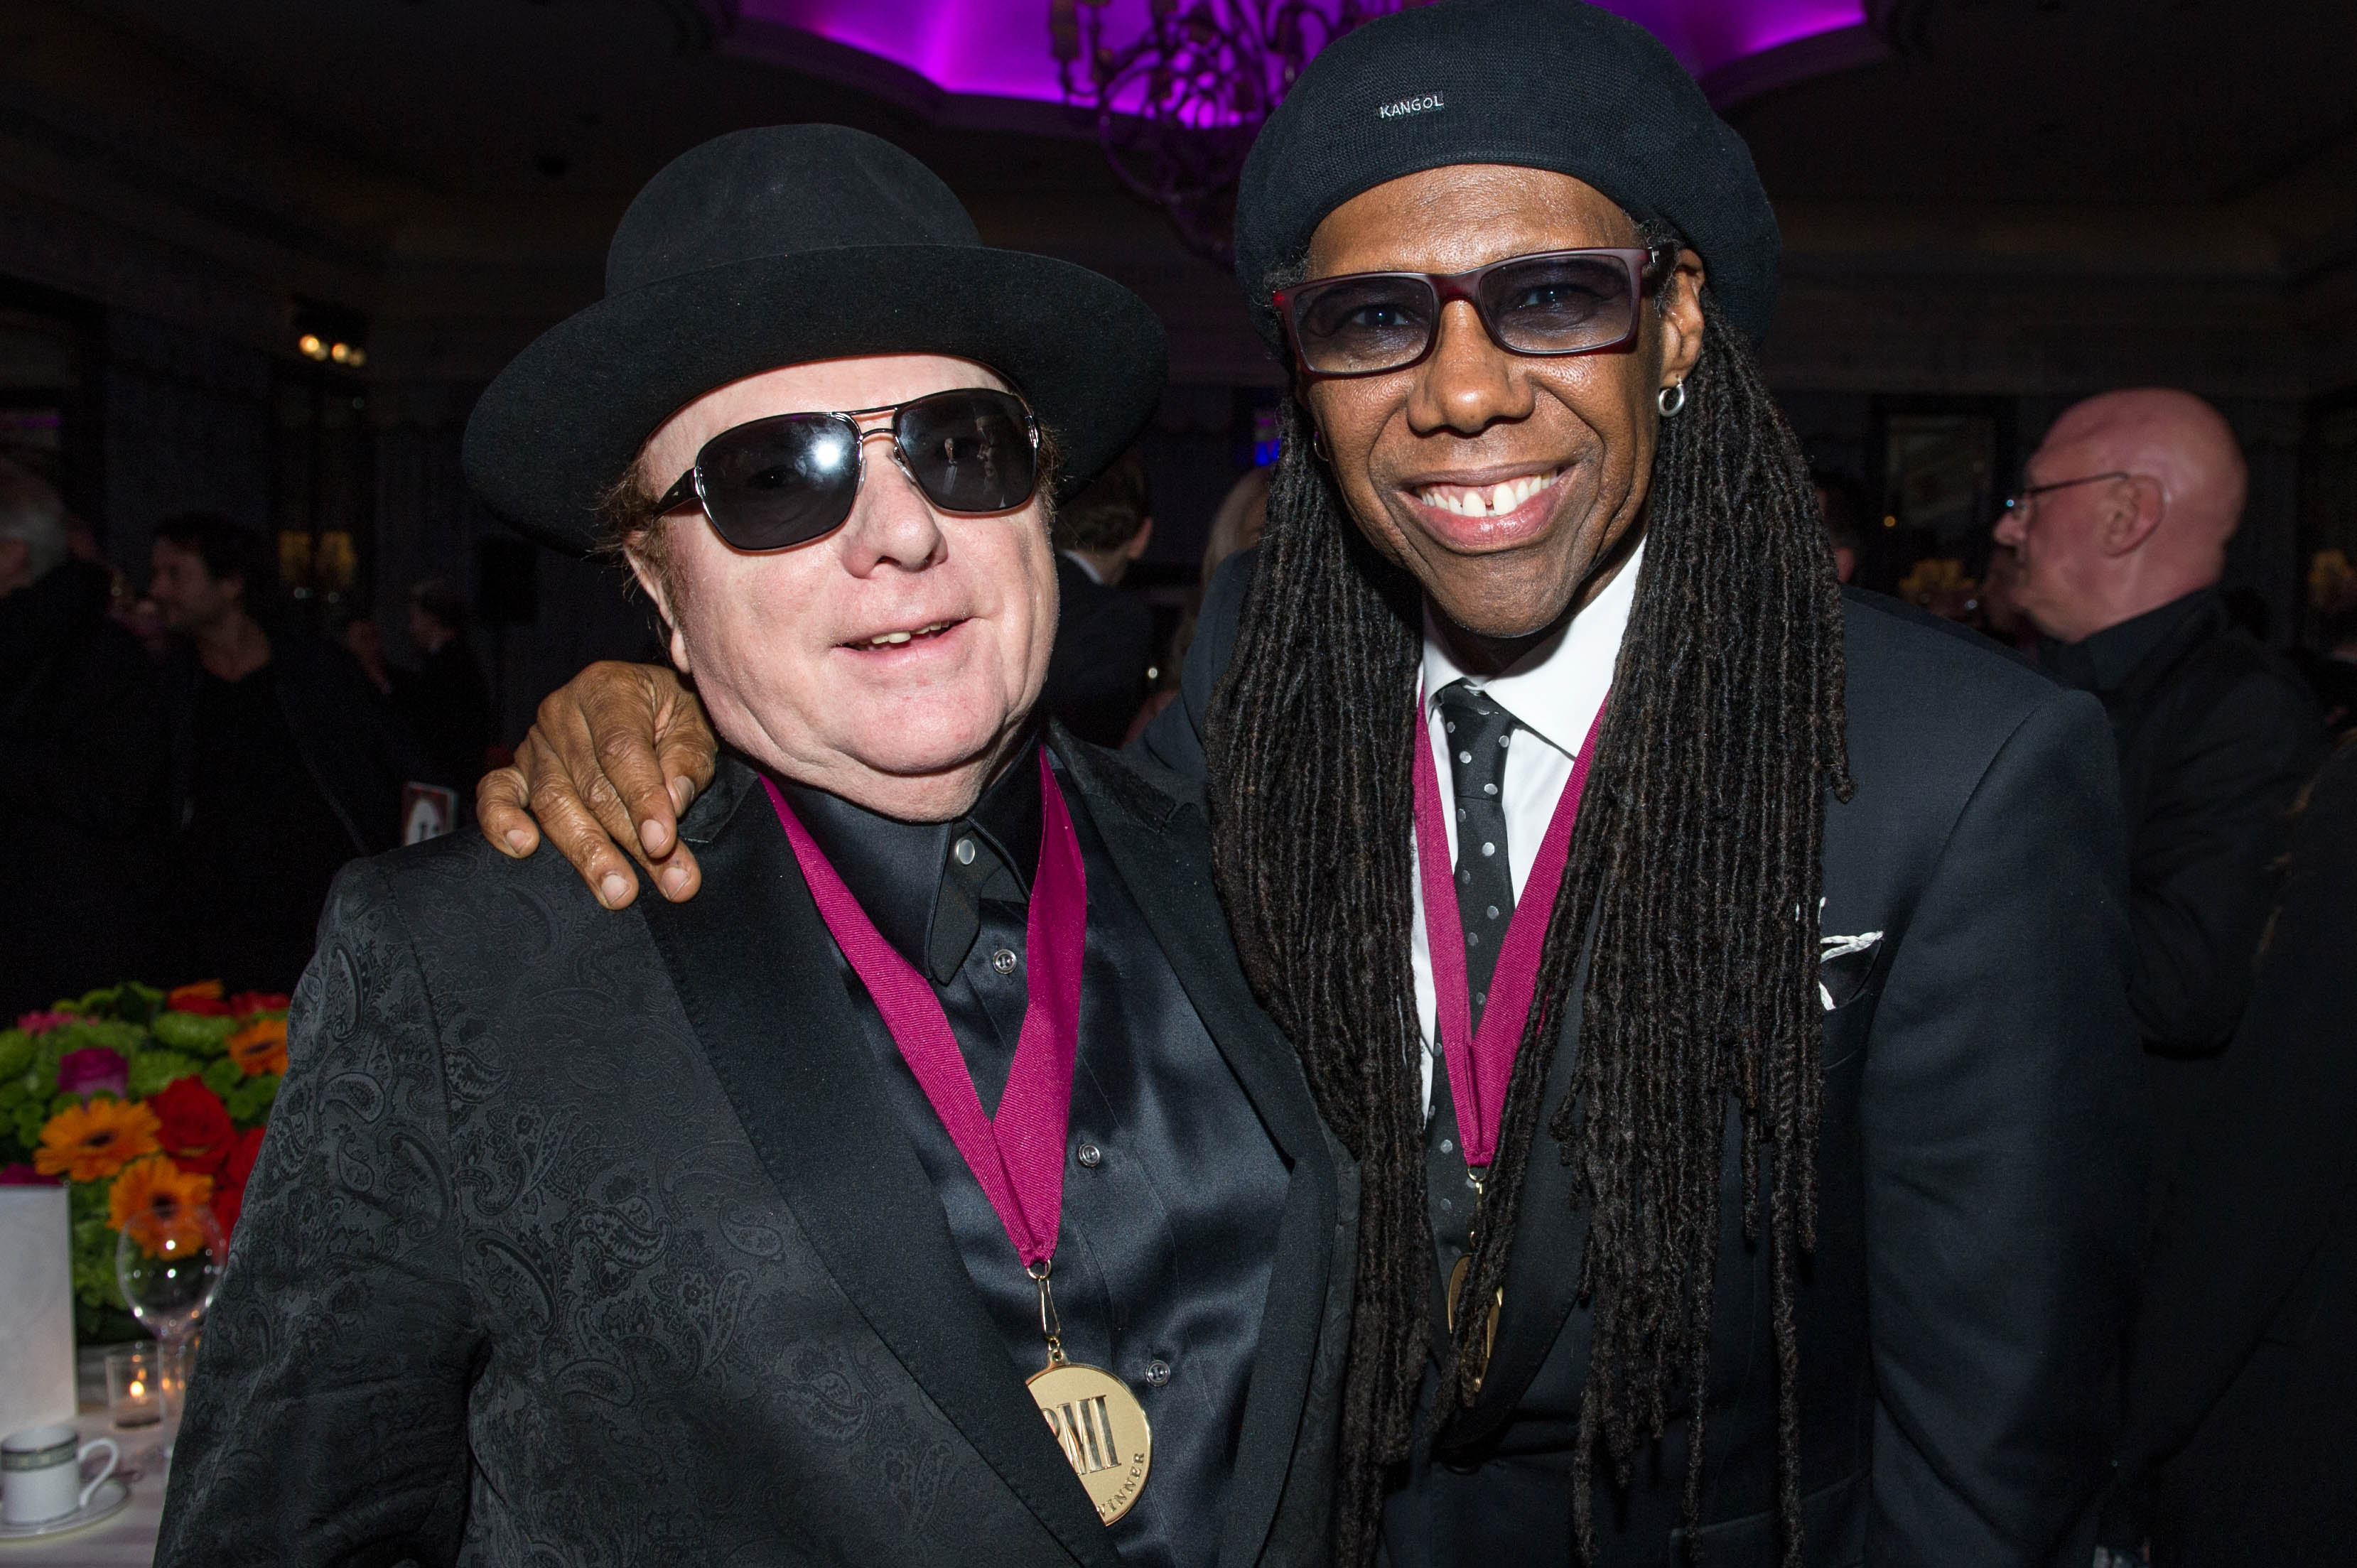 BMI Icon Sir Tim Rice and BMI President   CEO Michael O Neill pause for a  photo onstage at the 2014 BMI London Awards a0d2ce4f41d